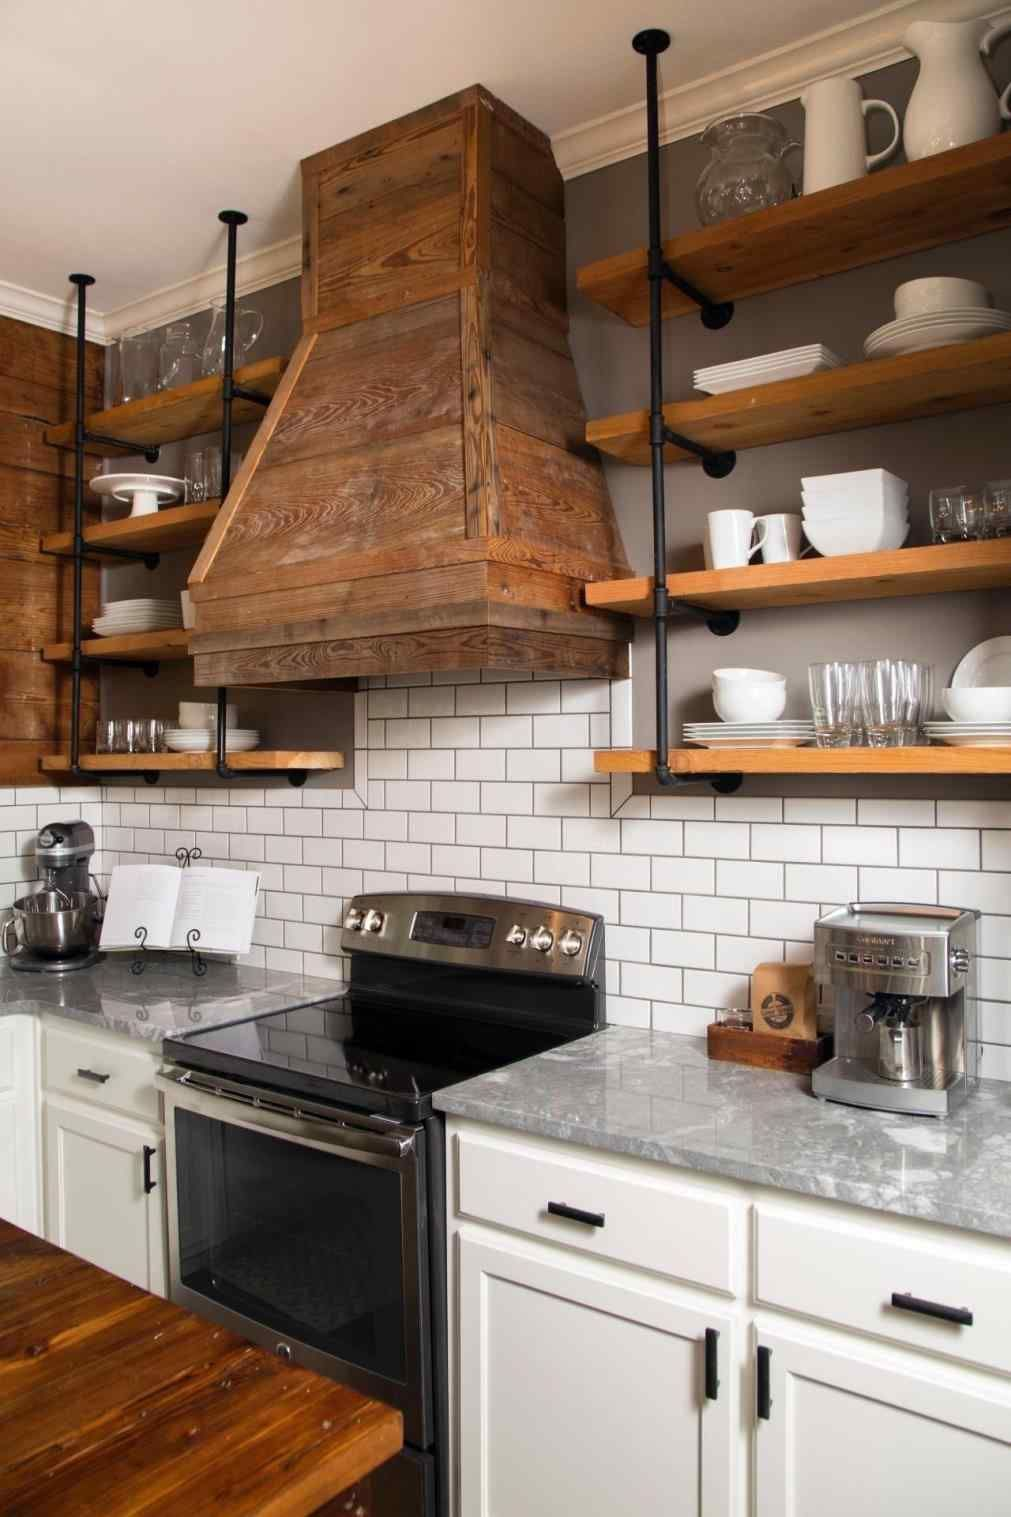 Best 15 Open Kitchen Cabinets No Doors Ideas Rustic Kitchen Cabinets Rustic Industrial Kitchen Farmhouse Kitchen Backsplash